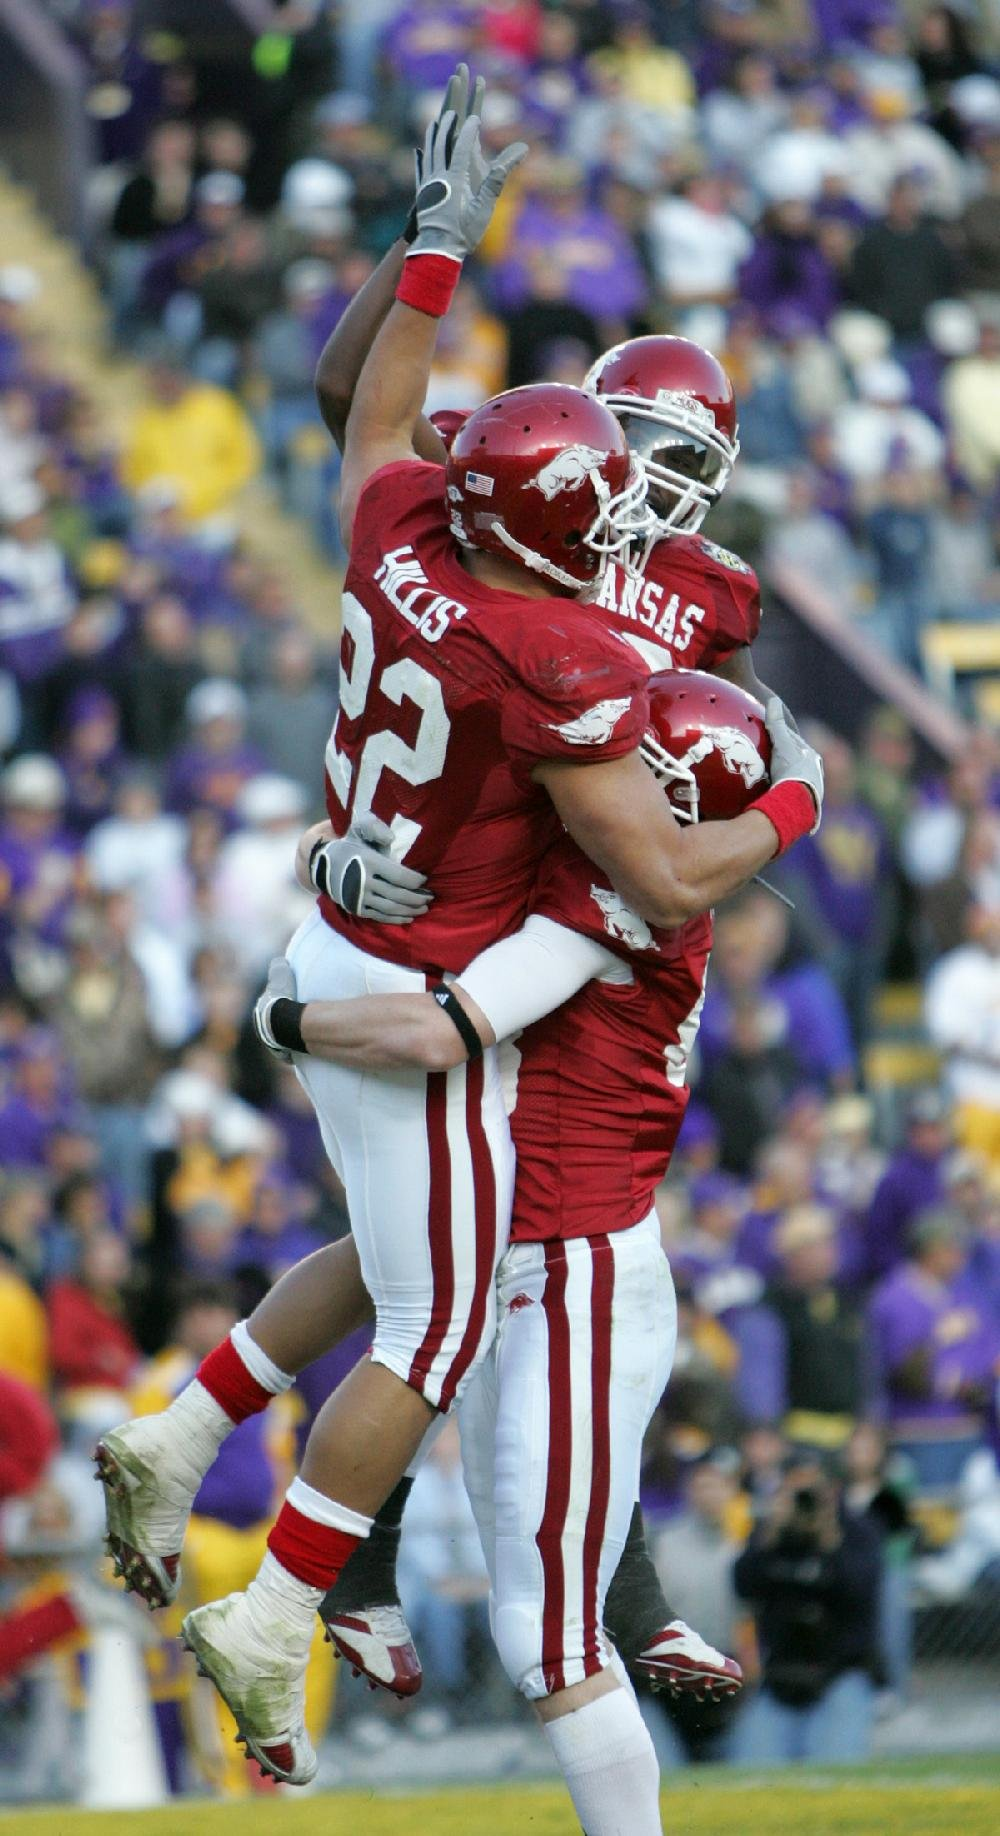 Running back Peyton Hillis (22) celebrates with teammates after scoring a touchdown in the second half. Hillis scored four touchdowns in the game, including two of Arkansas' three scores in the overtime periods.